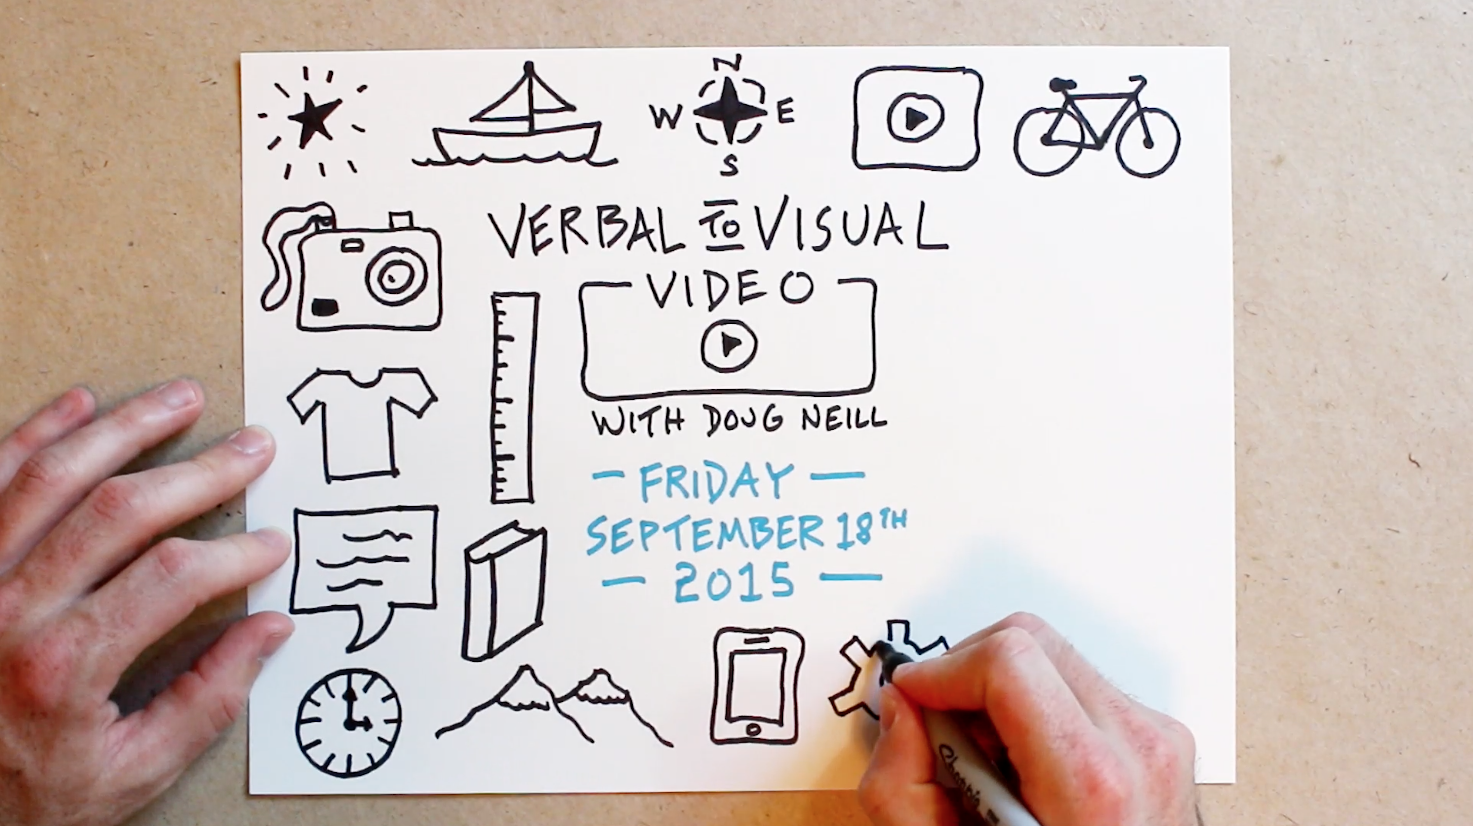 Page Full Of Icons - Verbal To Visual - Doug Neill - sketchnoting, doodling, visual note-taking